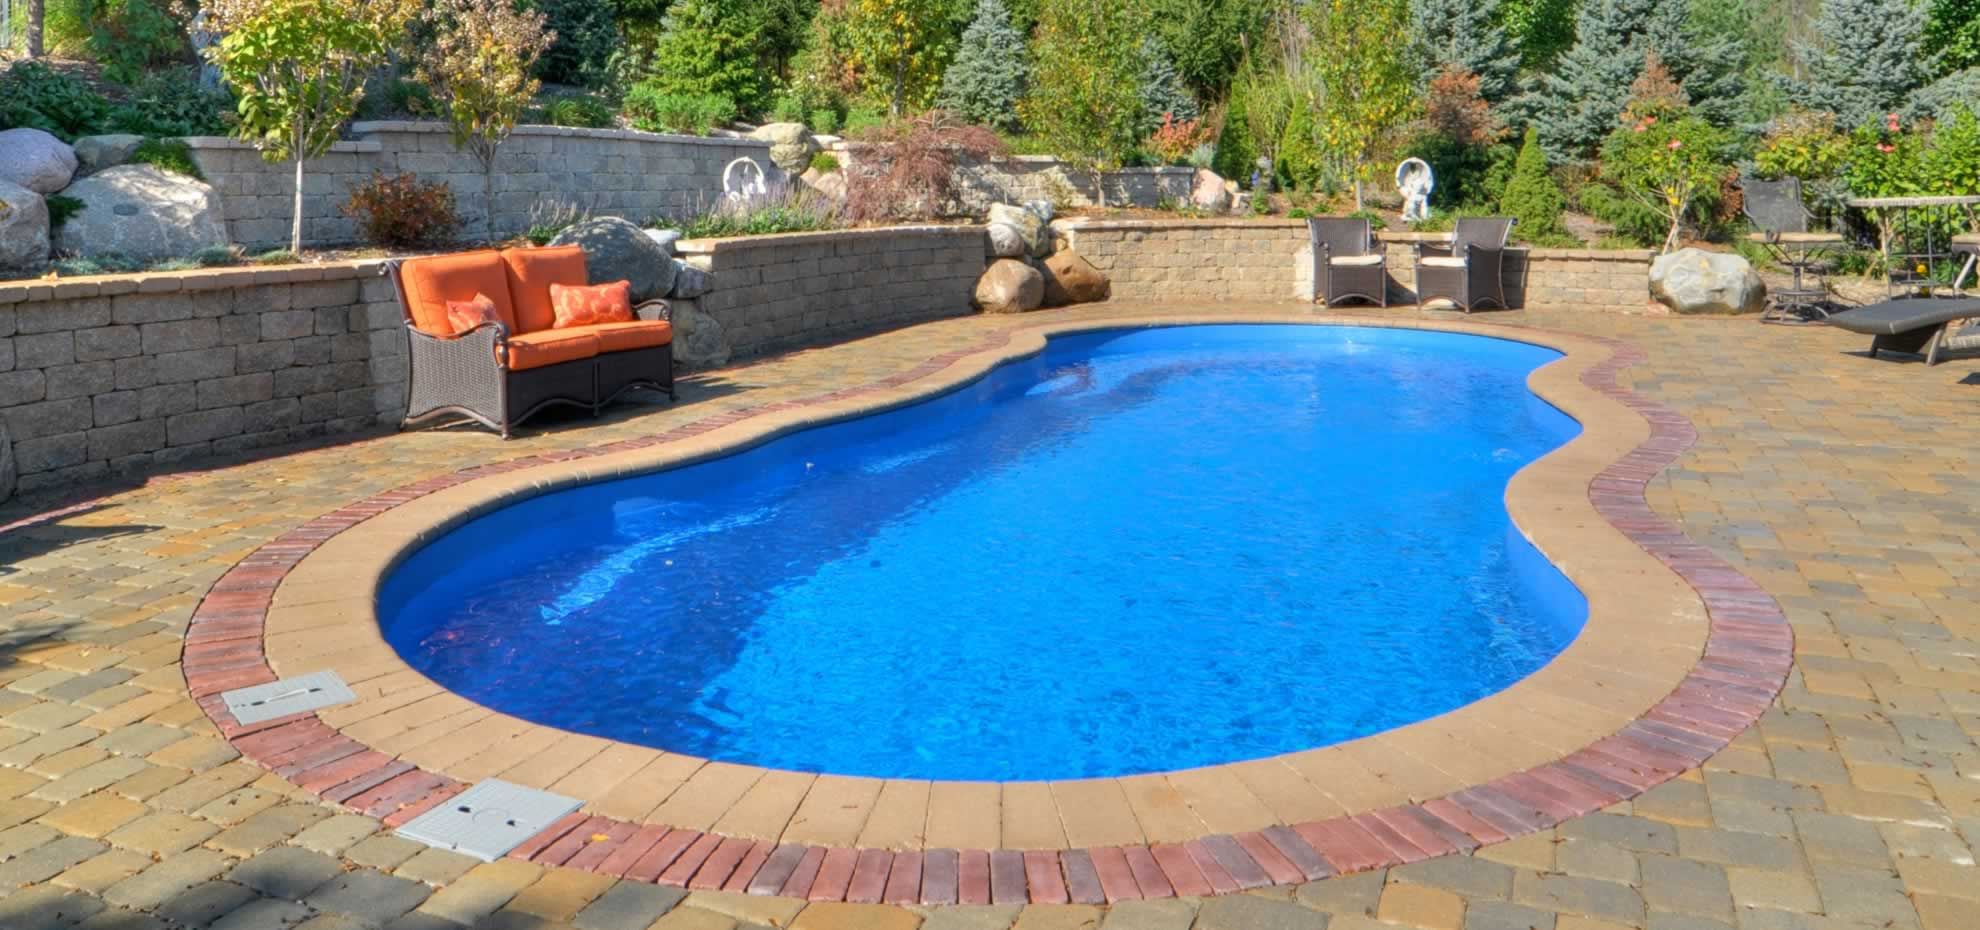 Riviera style Fibreglass pool with coping by Leisure Pools